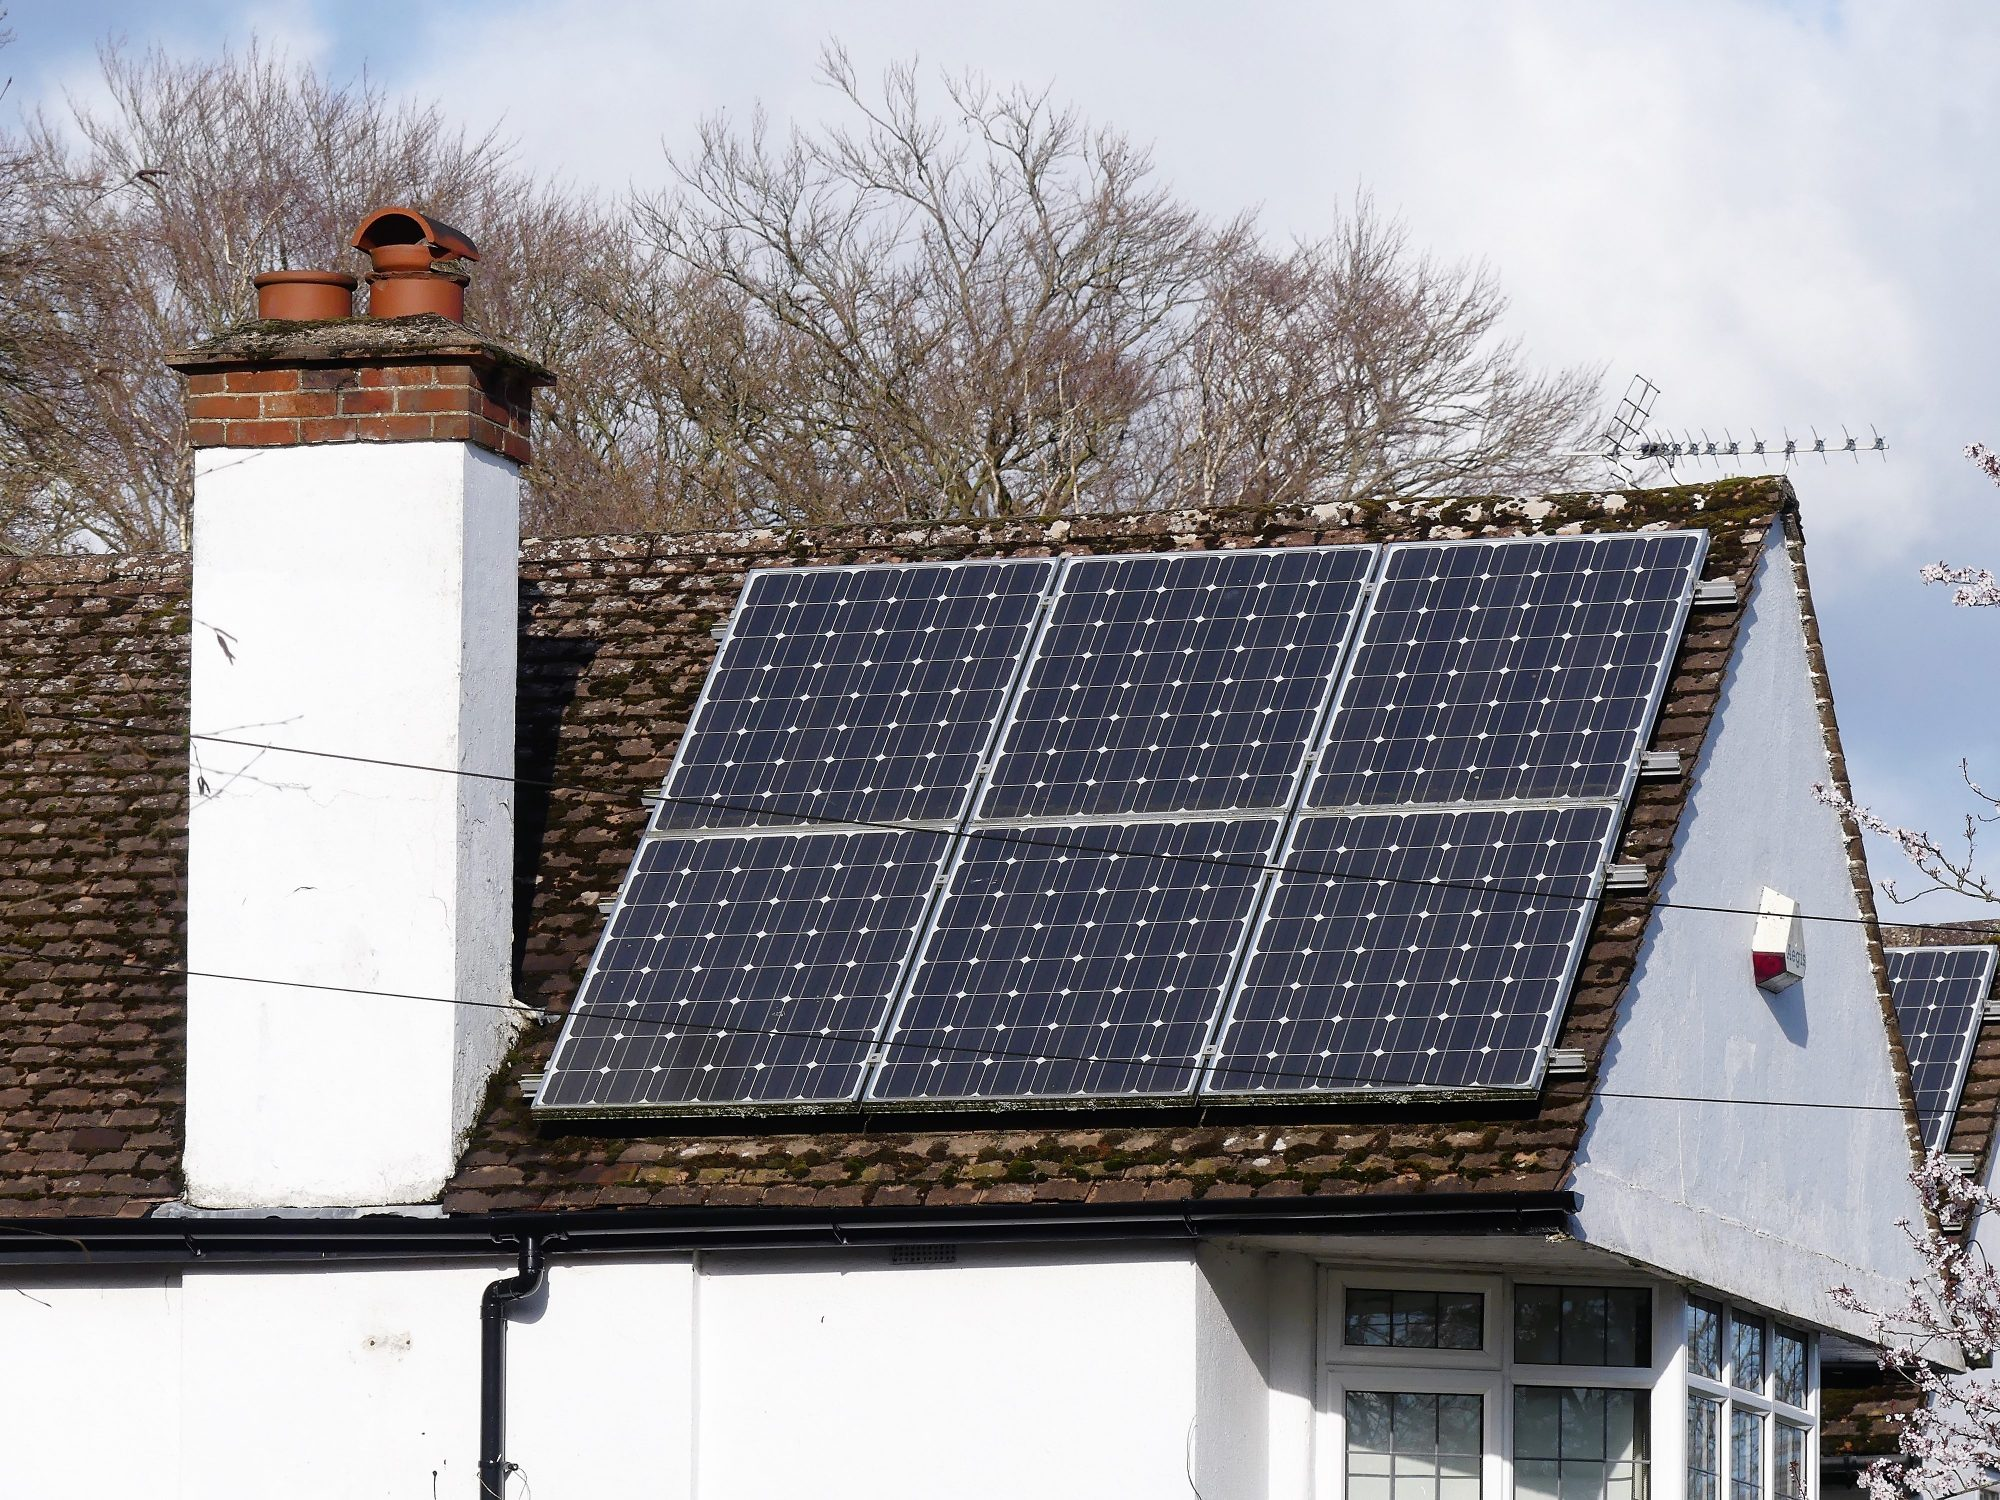 Green home upgrades held back by lack of Government clarity, says FMB